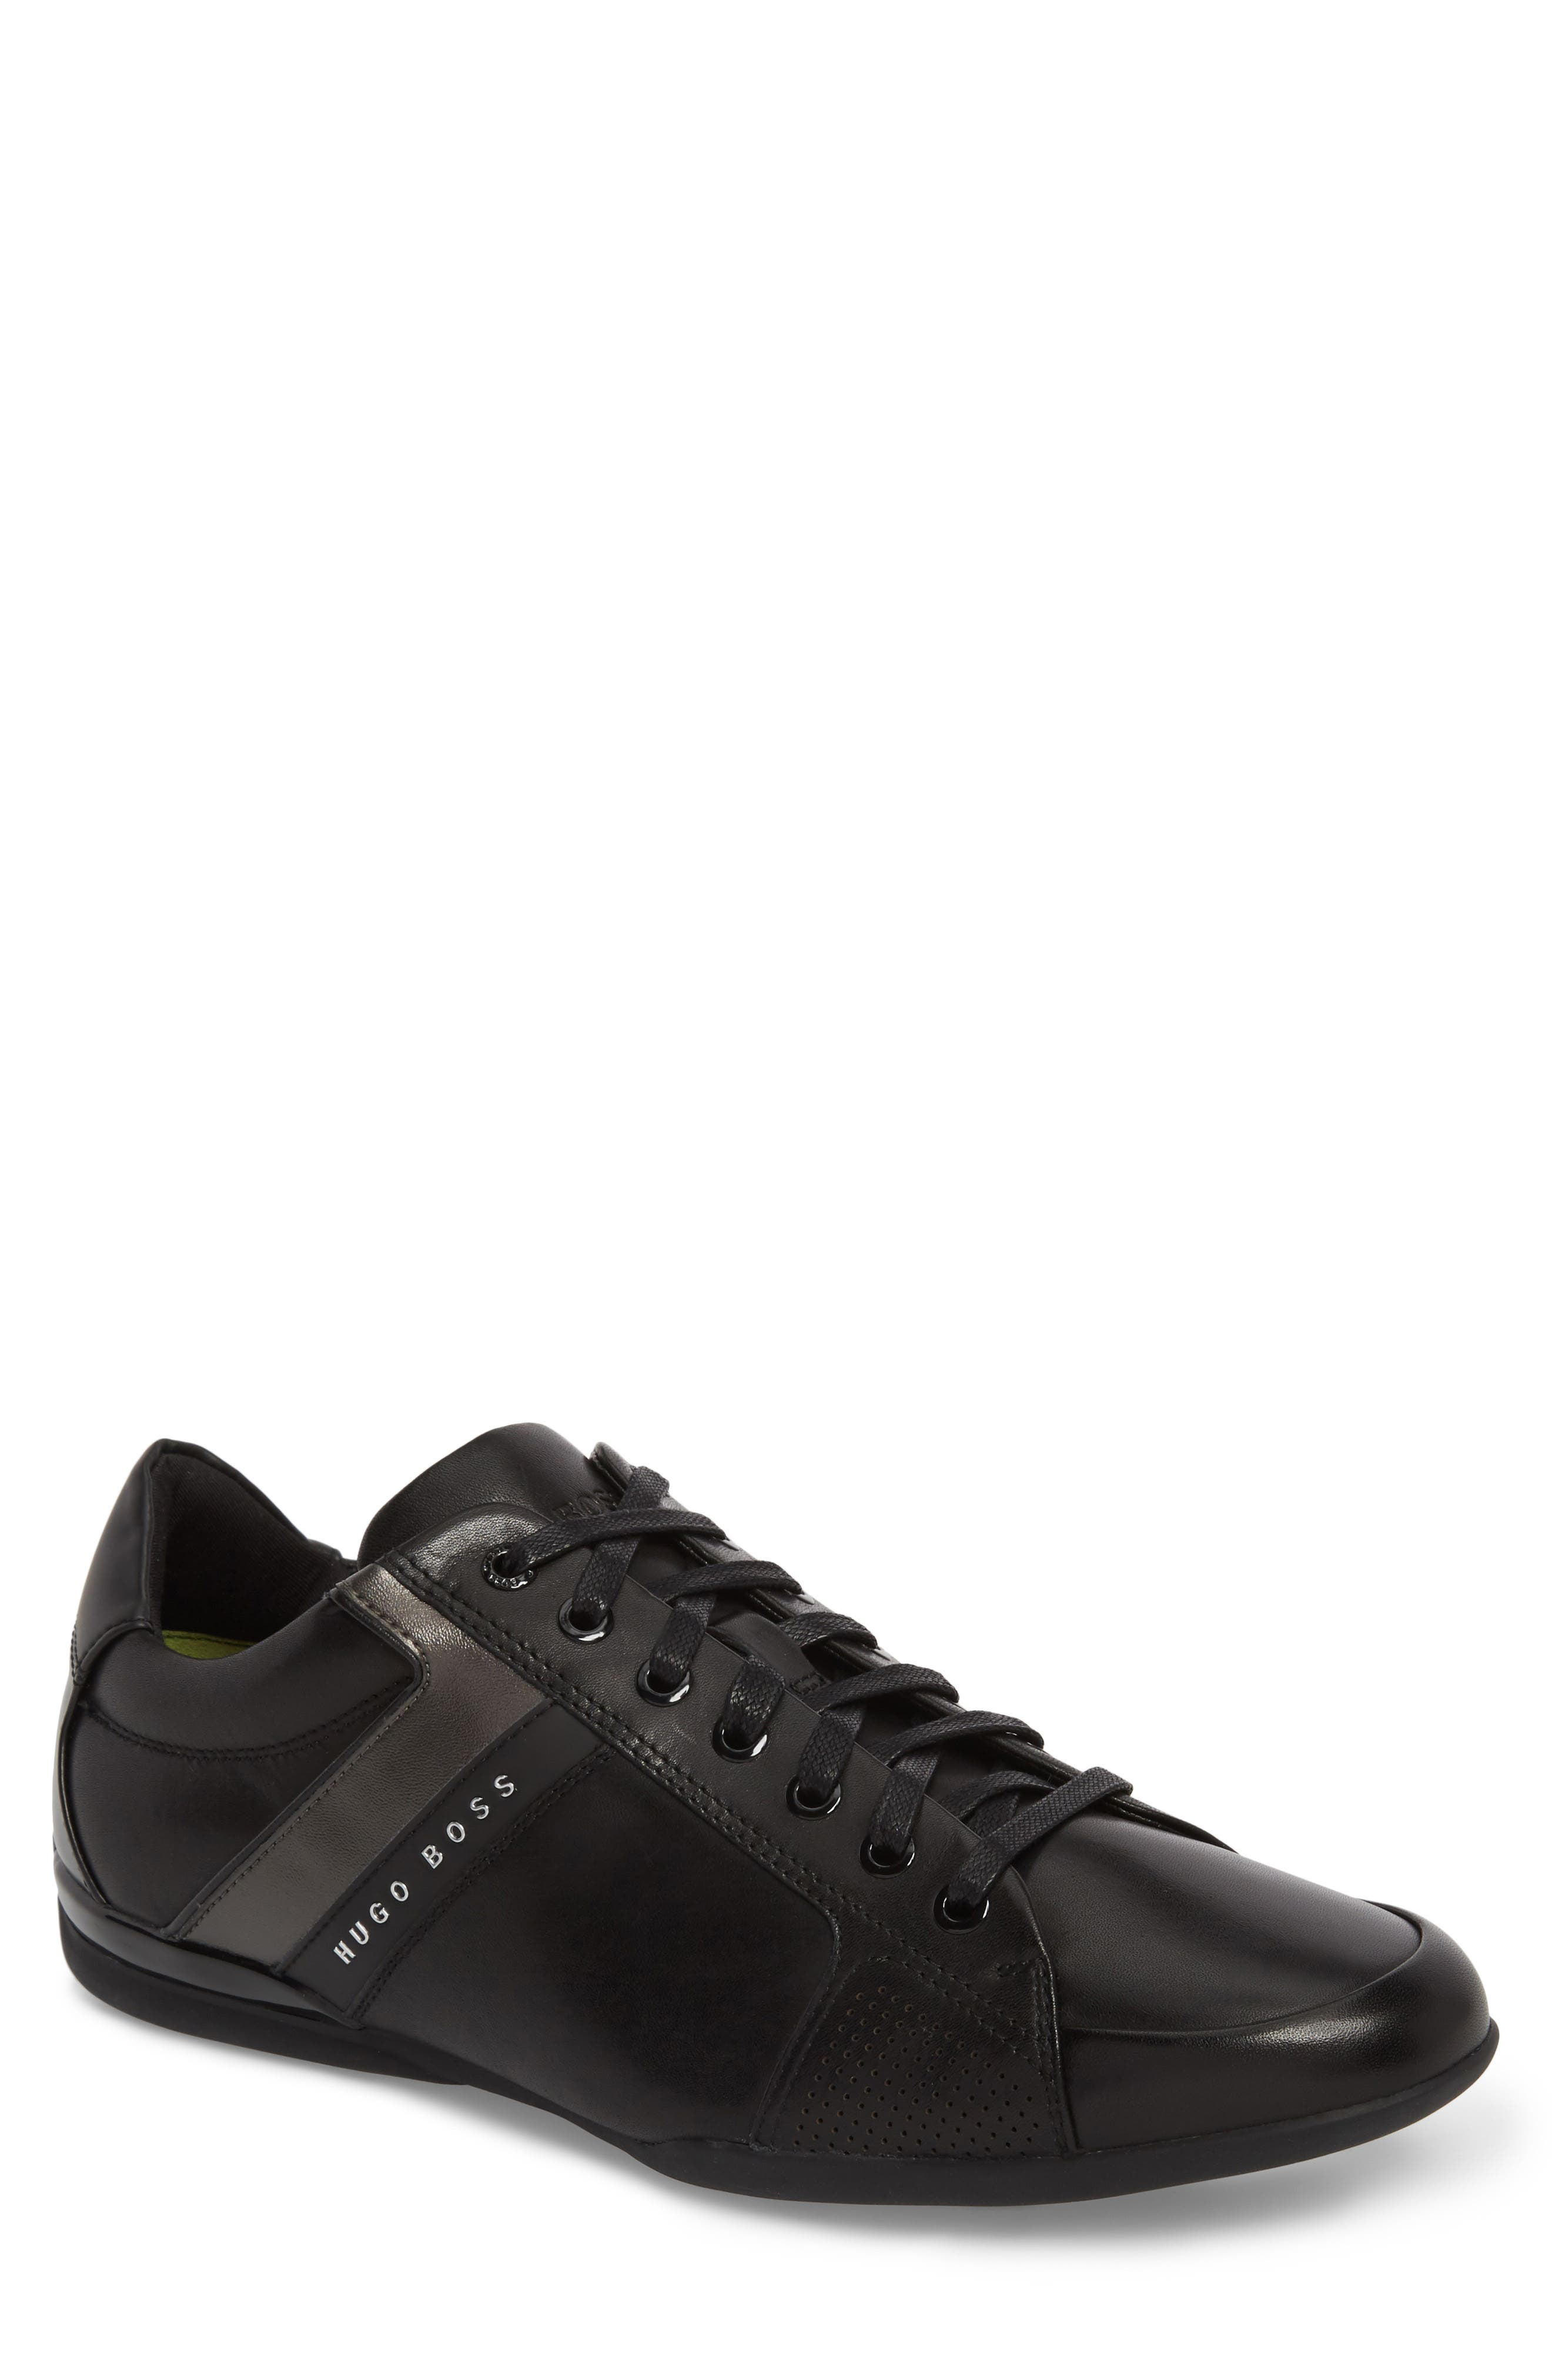 Space Lowp Lux Sneaker,                             Main thumbnail 1, color,                             001